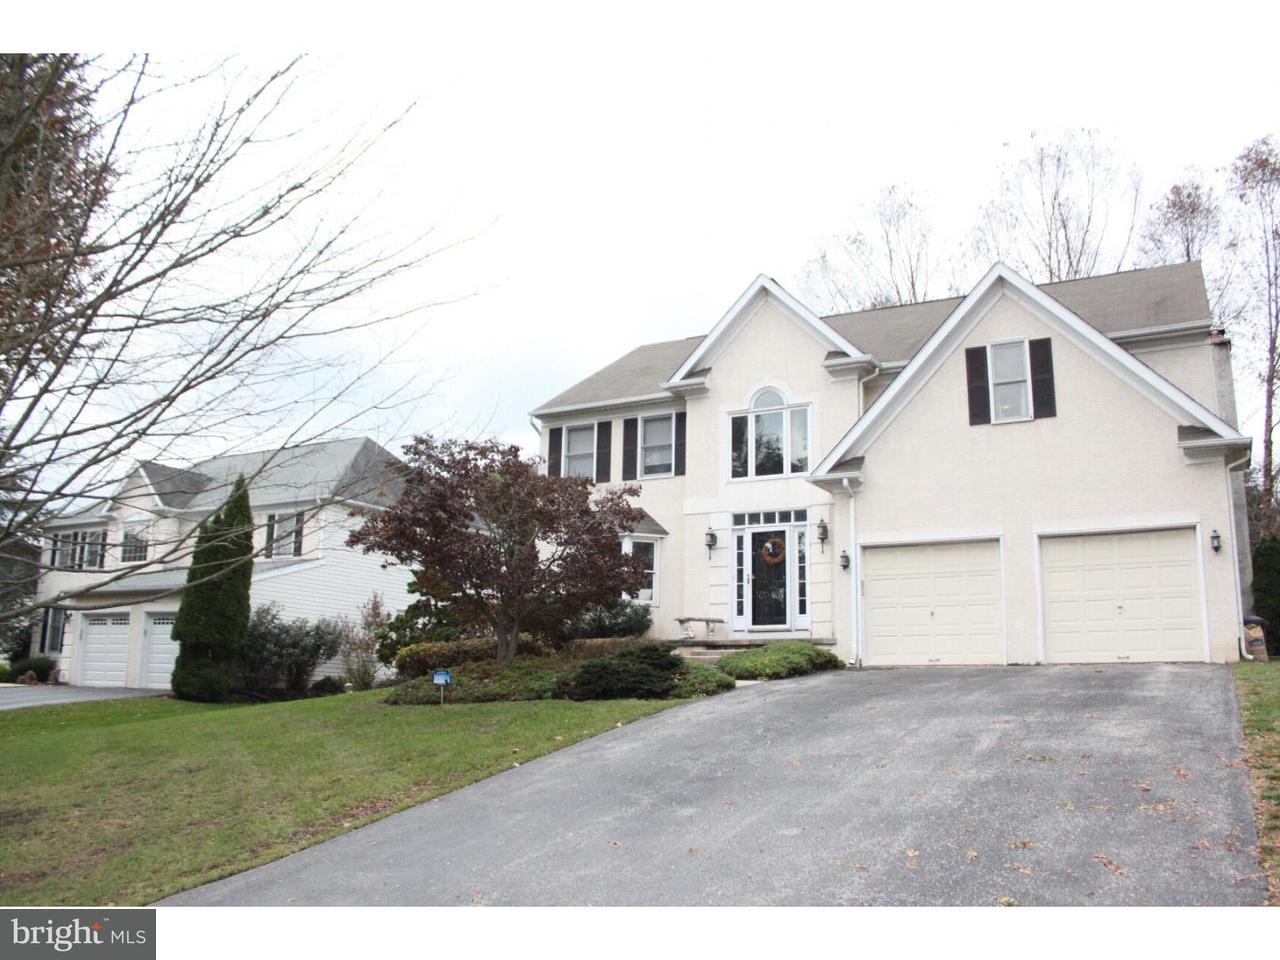 Single Family Home for Sale at 538 OLIVIA WAY Lafayette Hill, Pennsylvania 19444 United States